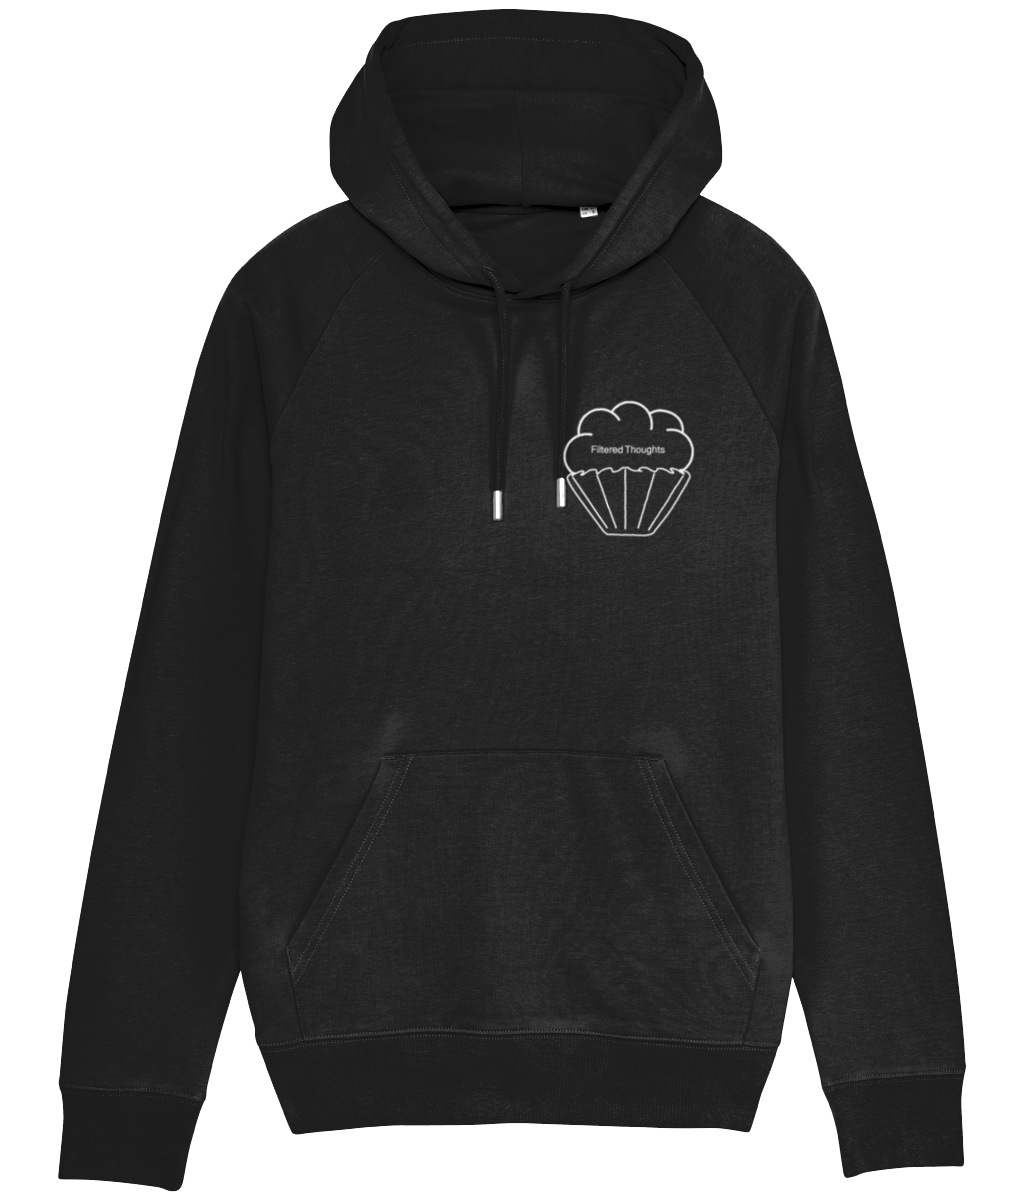 Filtered Thoughts Hoodie - Mens